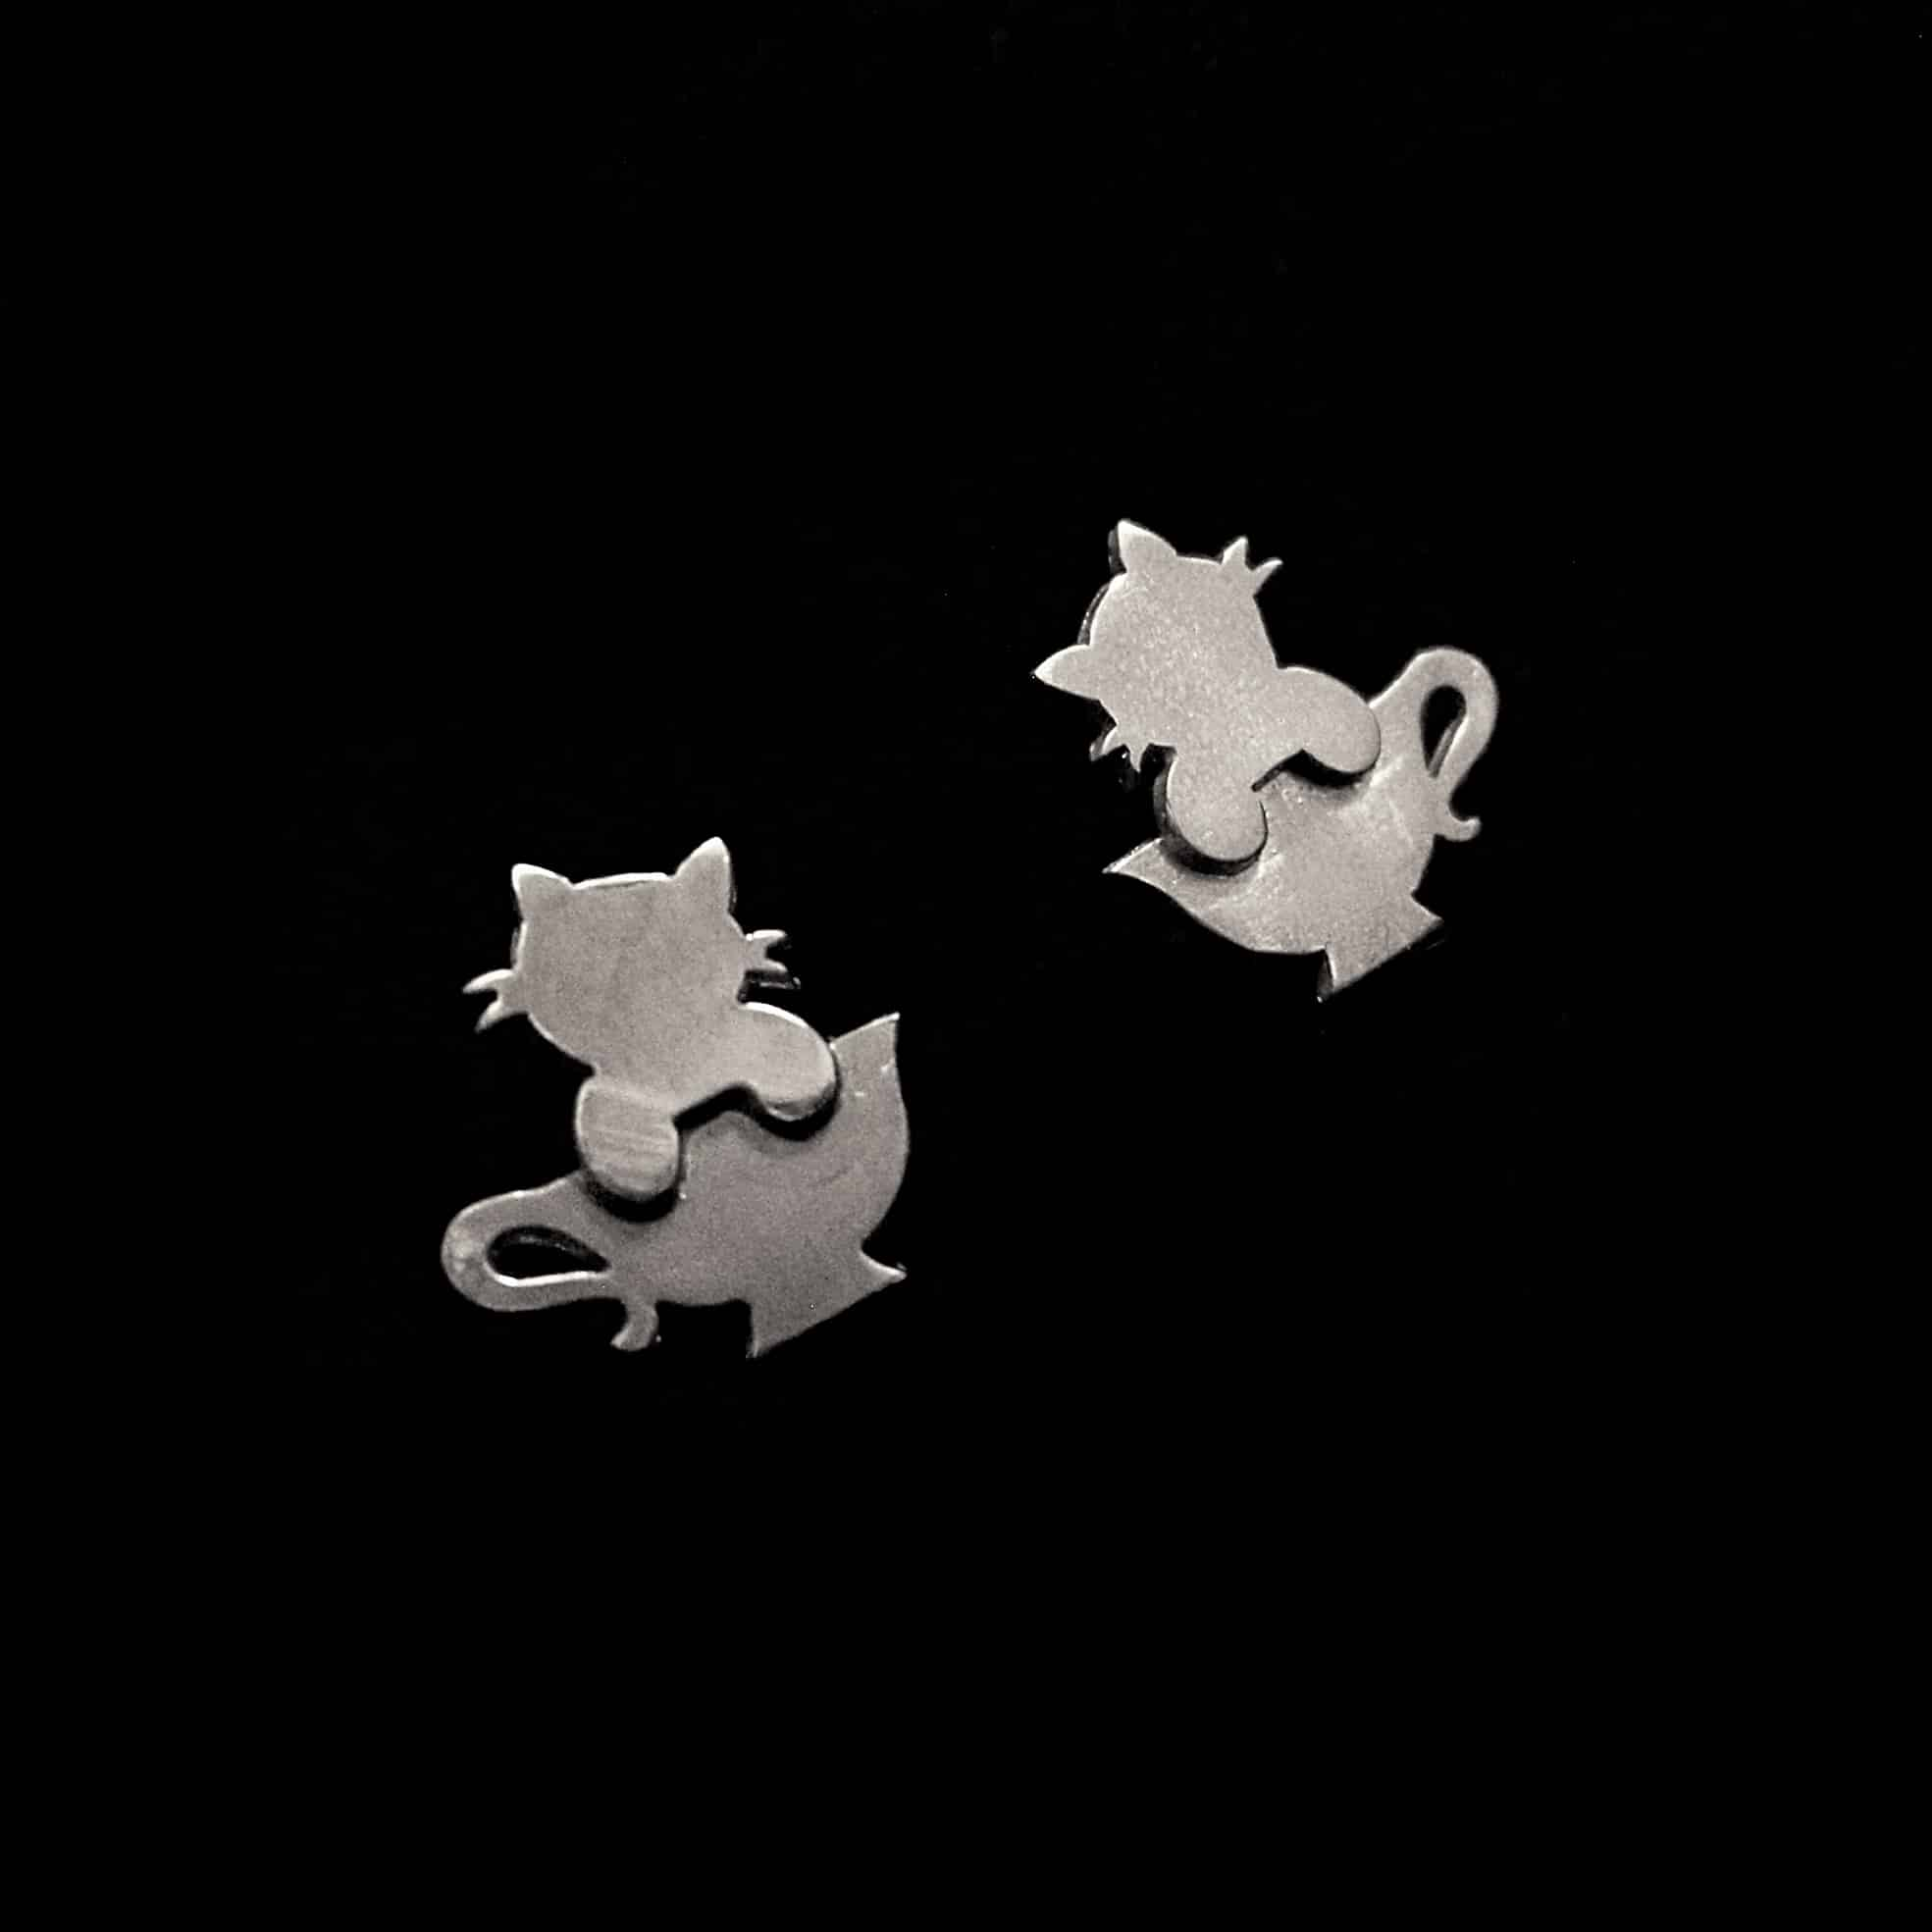 Tea Cat – Silver Stud Earrings By Skadi Jewellery Design